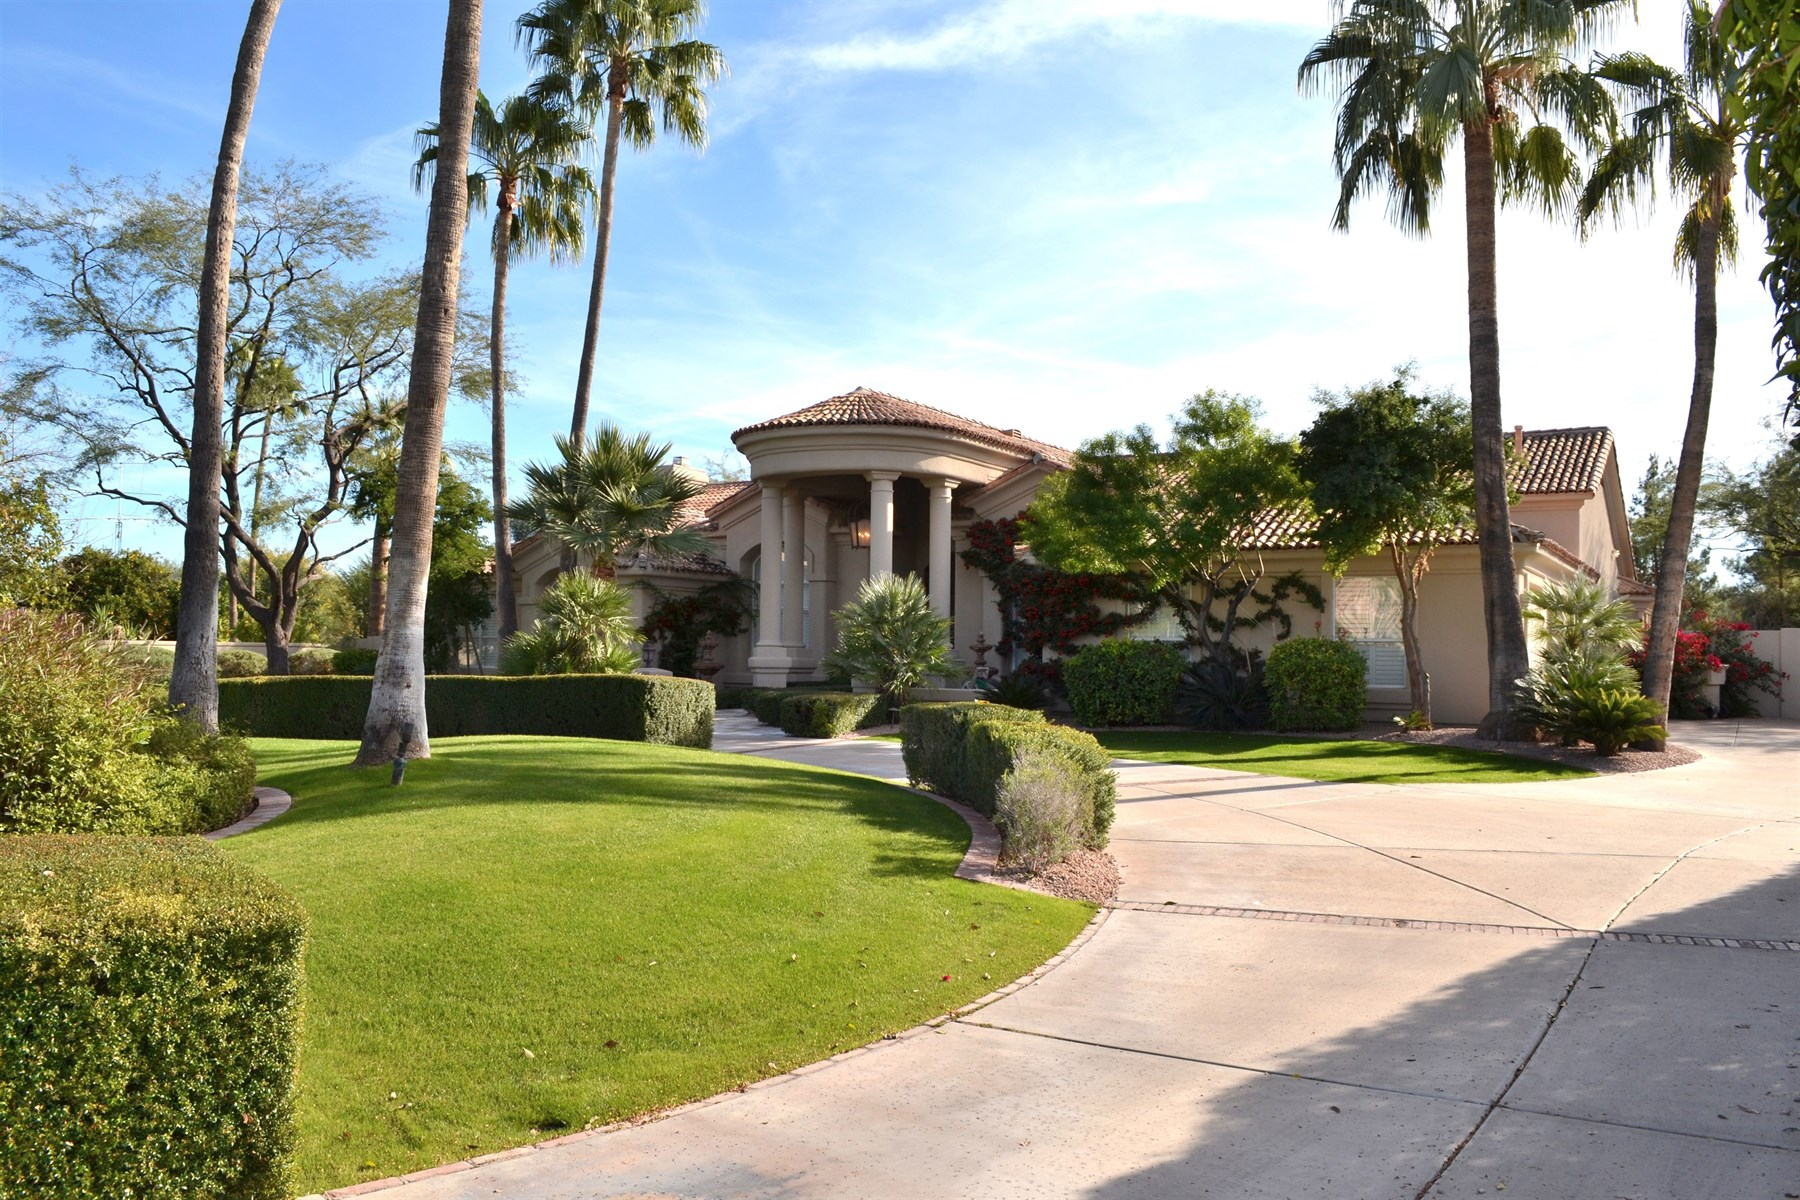 Moradia para Venda às Beautiful home is located in the heart of Paradise Valley. 6865 E Bronco Dr Paradise Valley, Arizona 85253 Estados Unidos